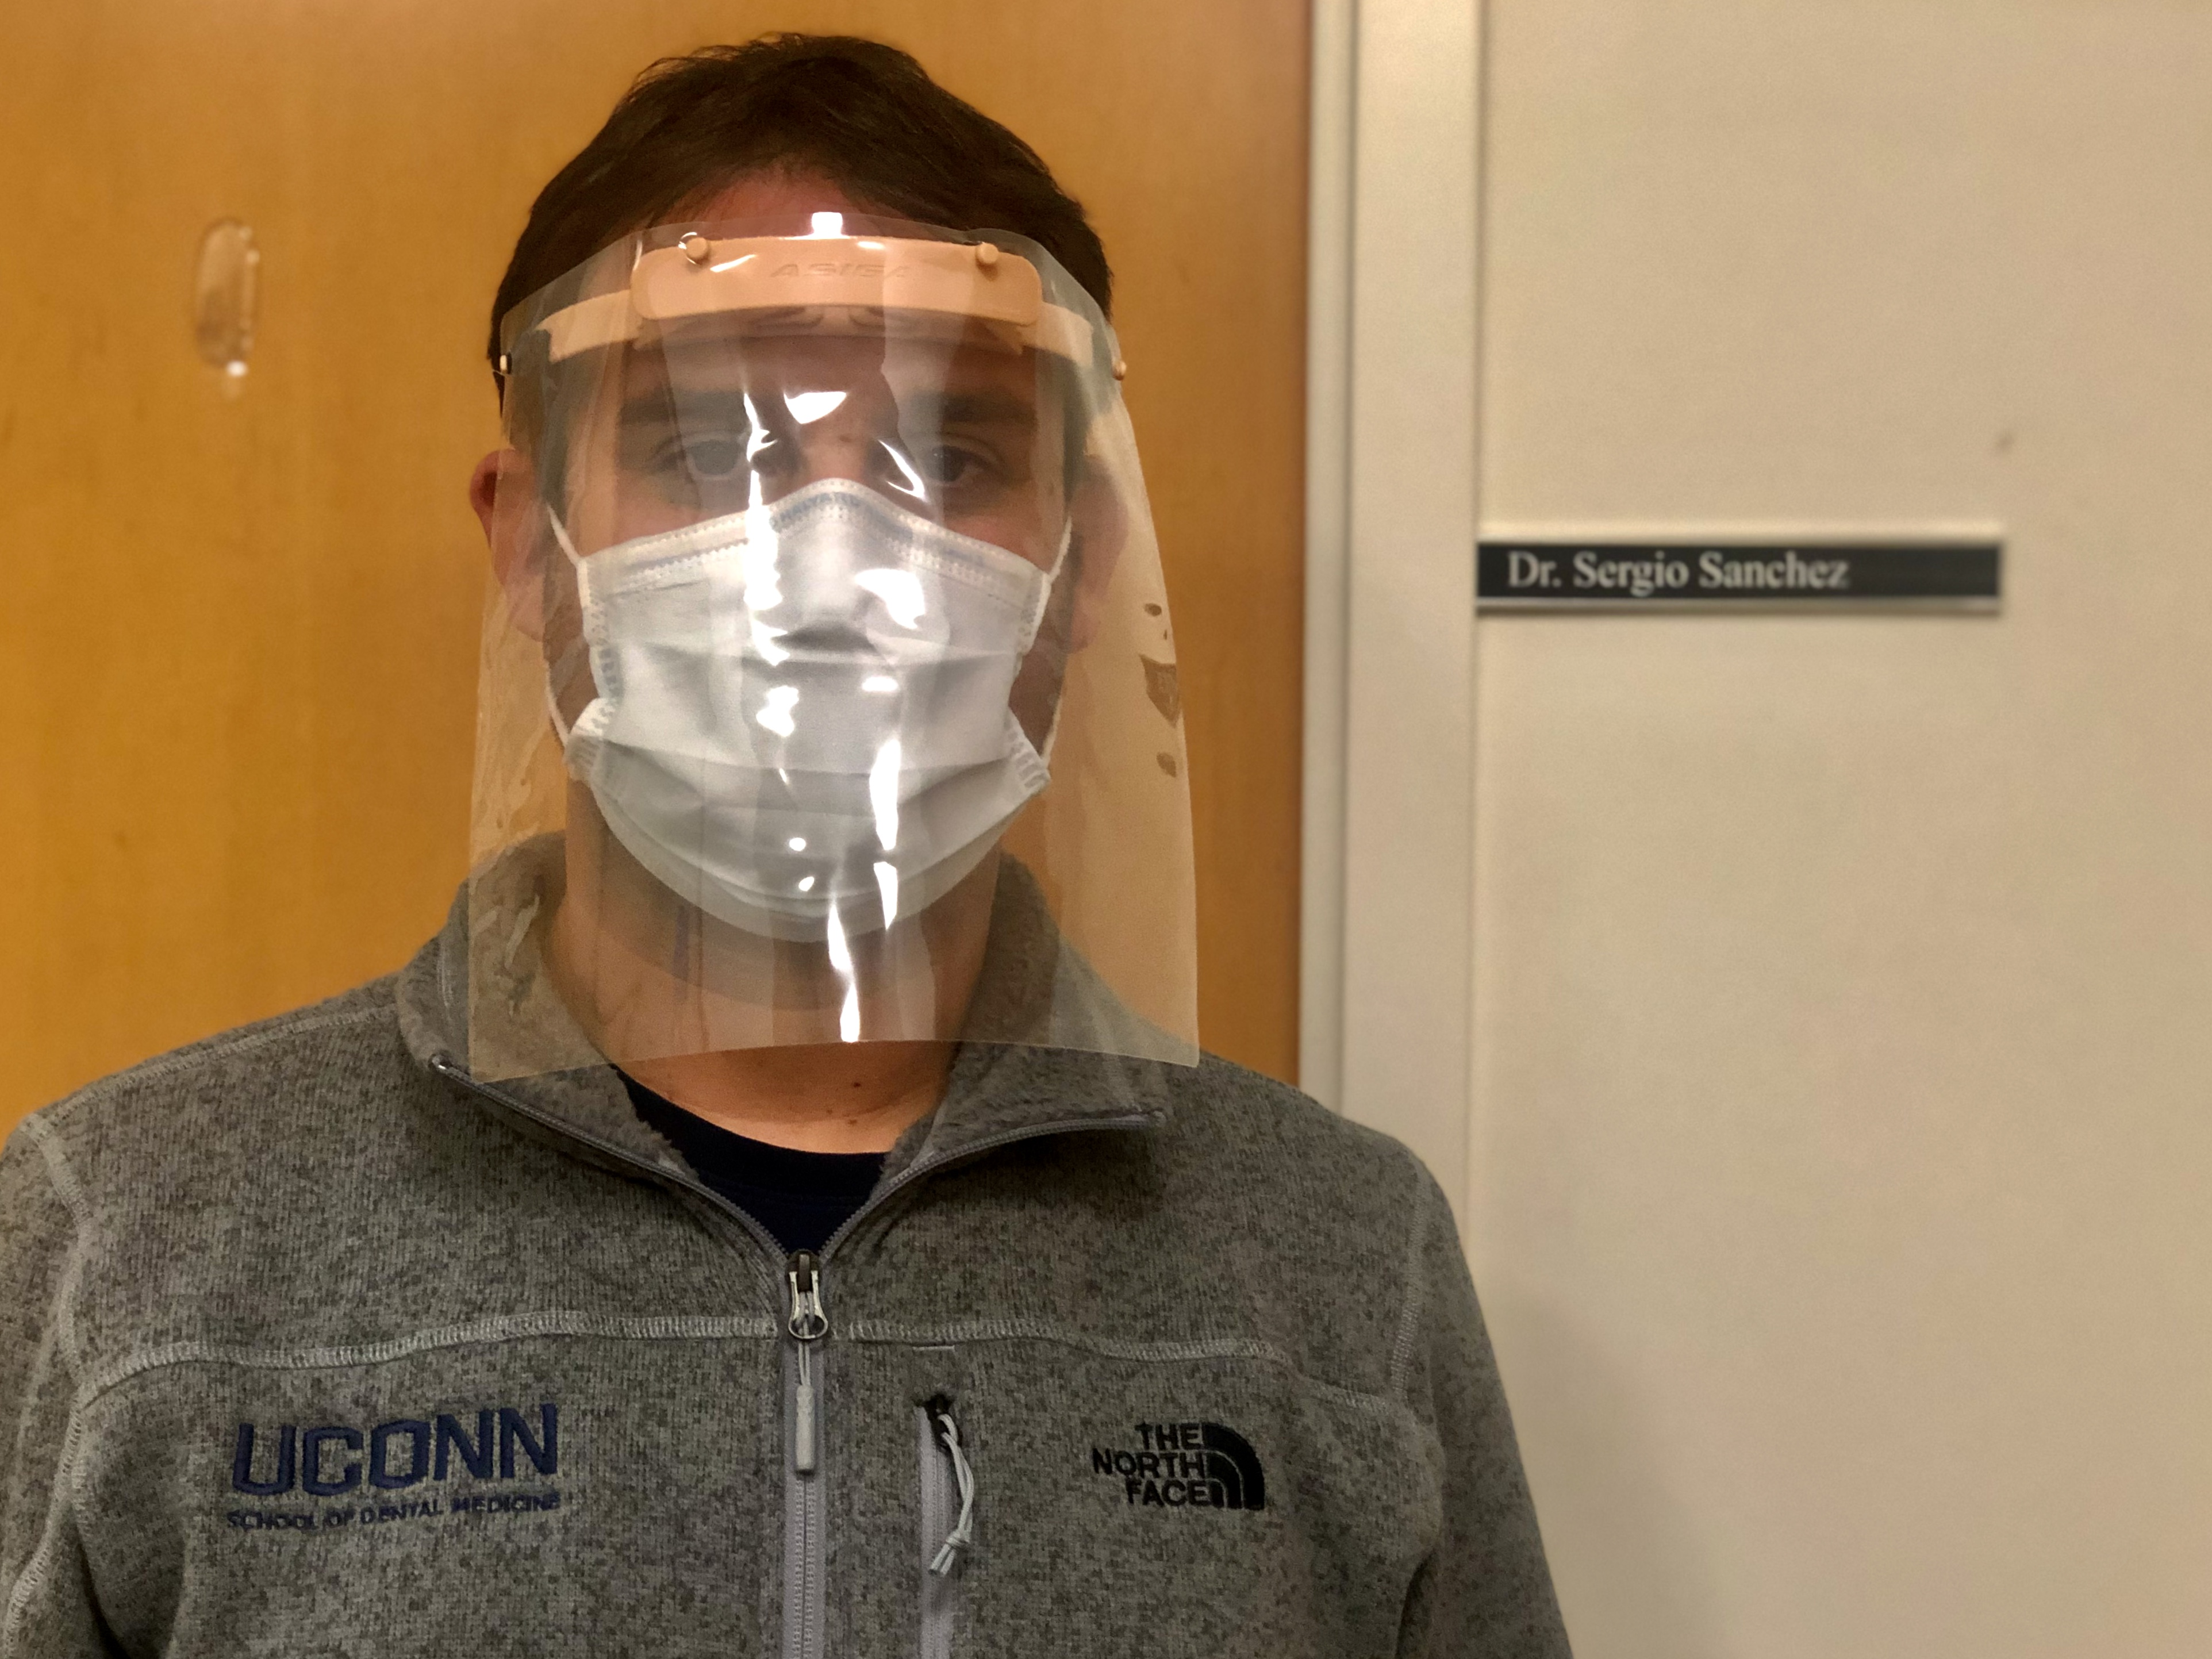 Dr. Sergio Sanchez Velasco models a face shield made through the 3D printing process to help protect dental residents and other health care workers from exposure to the novel coronavirus. (UConn Health Photo)